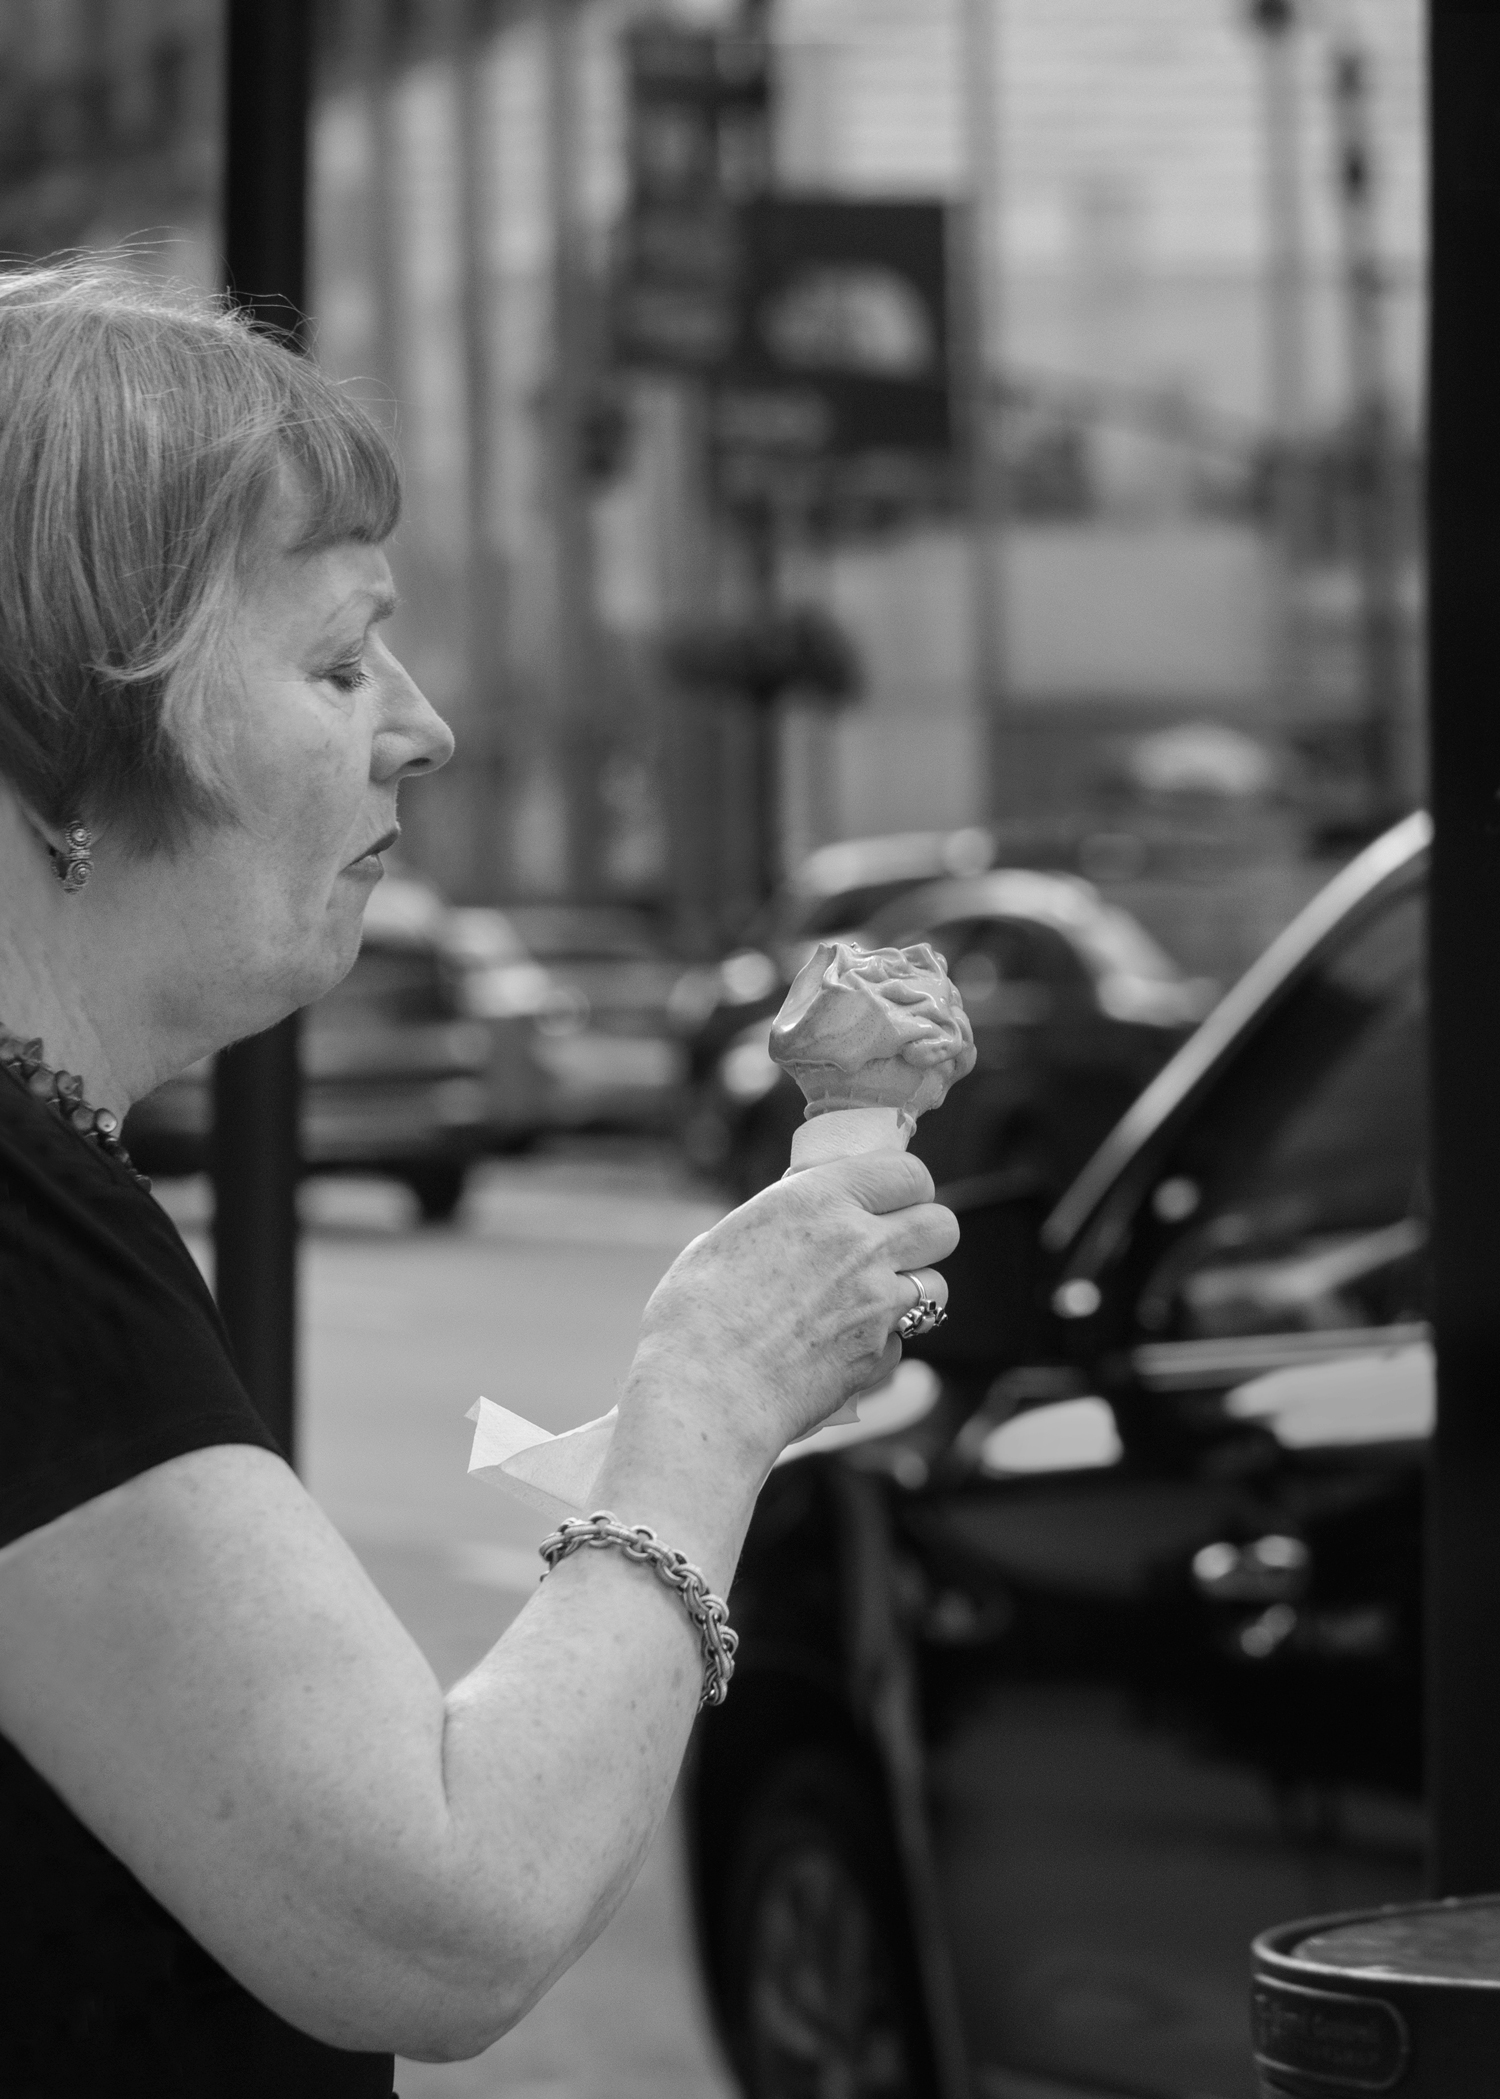 Ice Cream in B&W. Photo by @the_human_journey_ Used with permission. Click picture for a larger image.